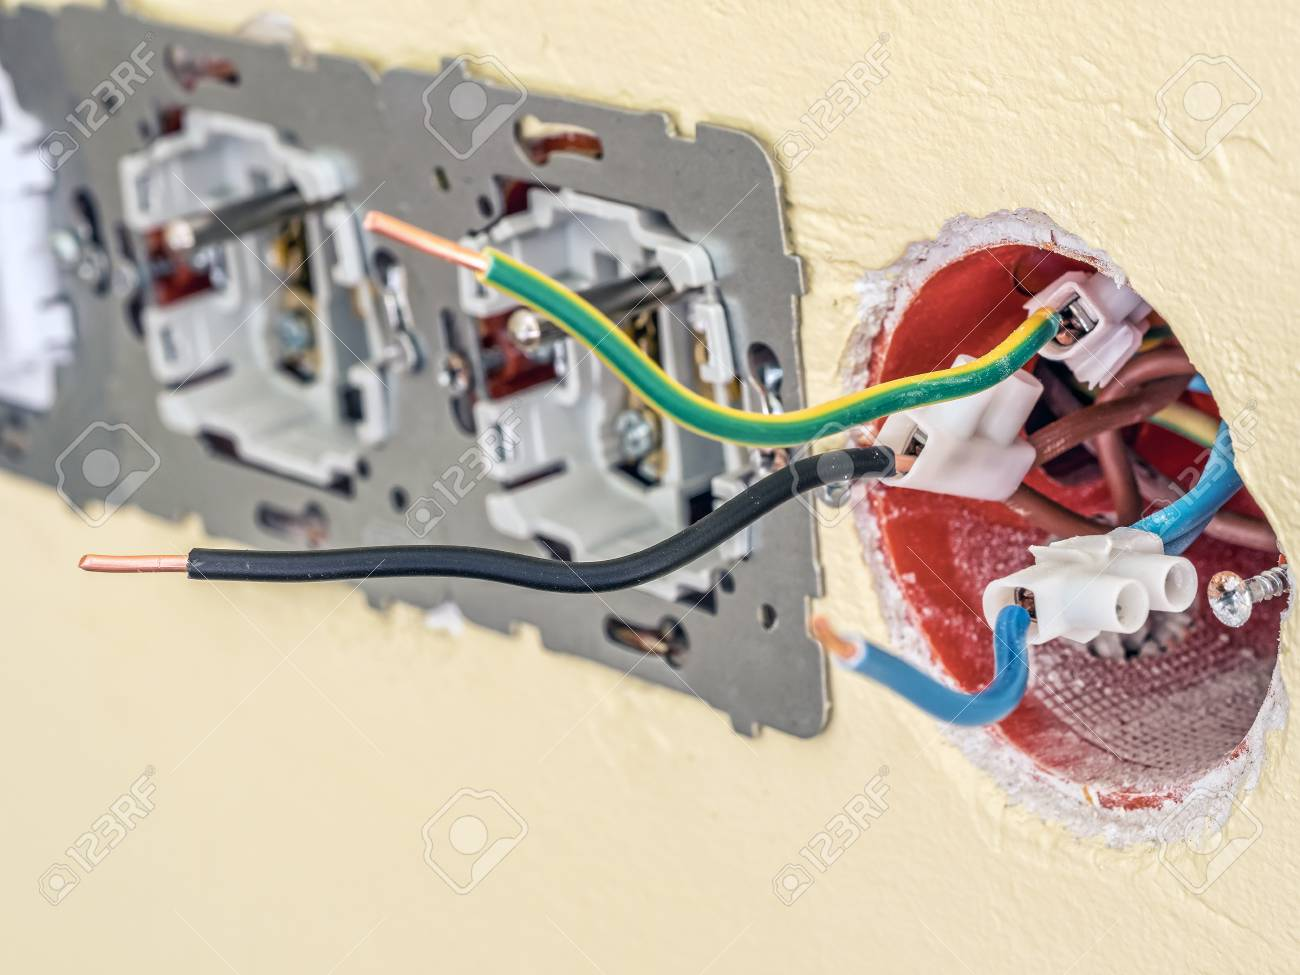 Closeup of partially embled wall socket with live, neutral.. on